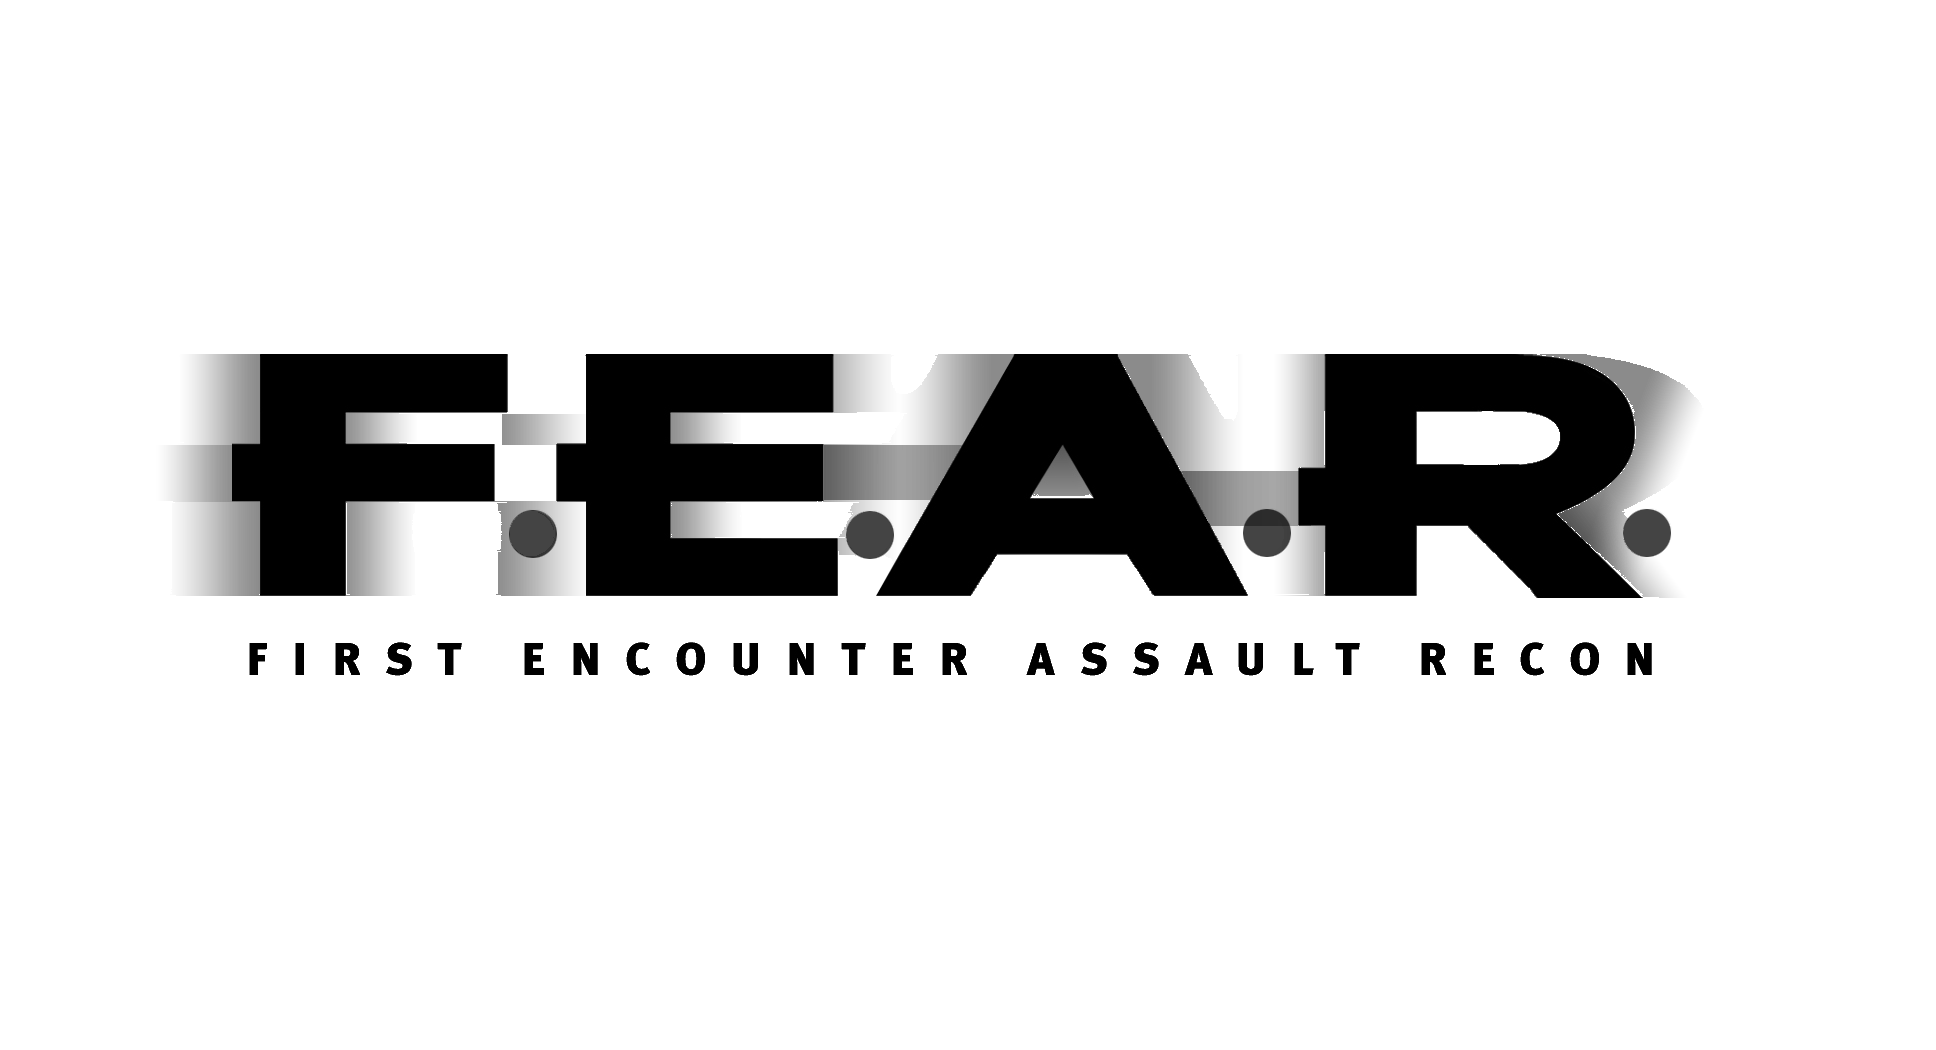 F.E.A.R. Returns, Monolith Does Not